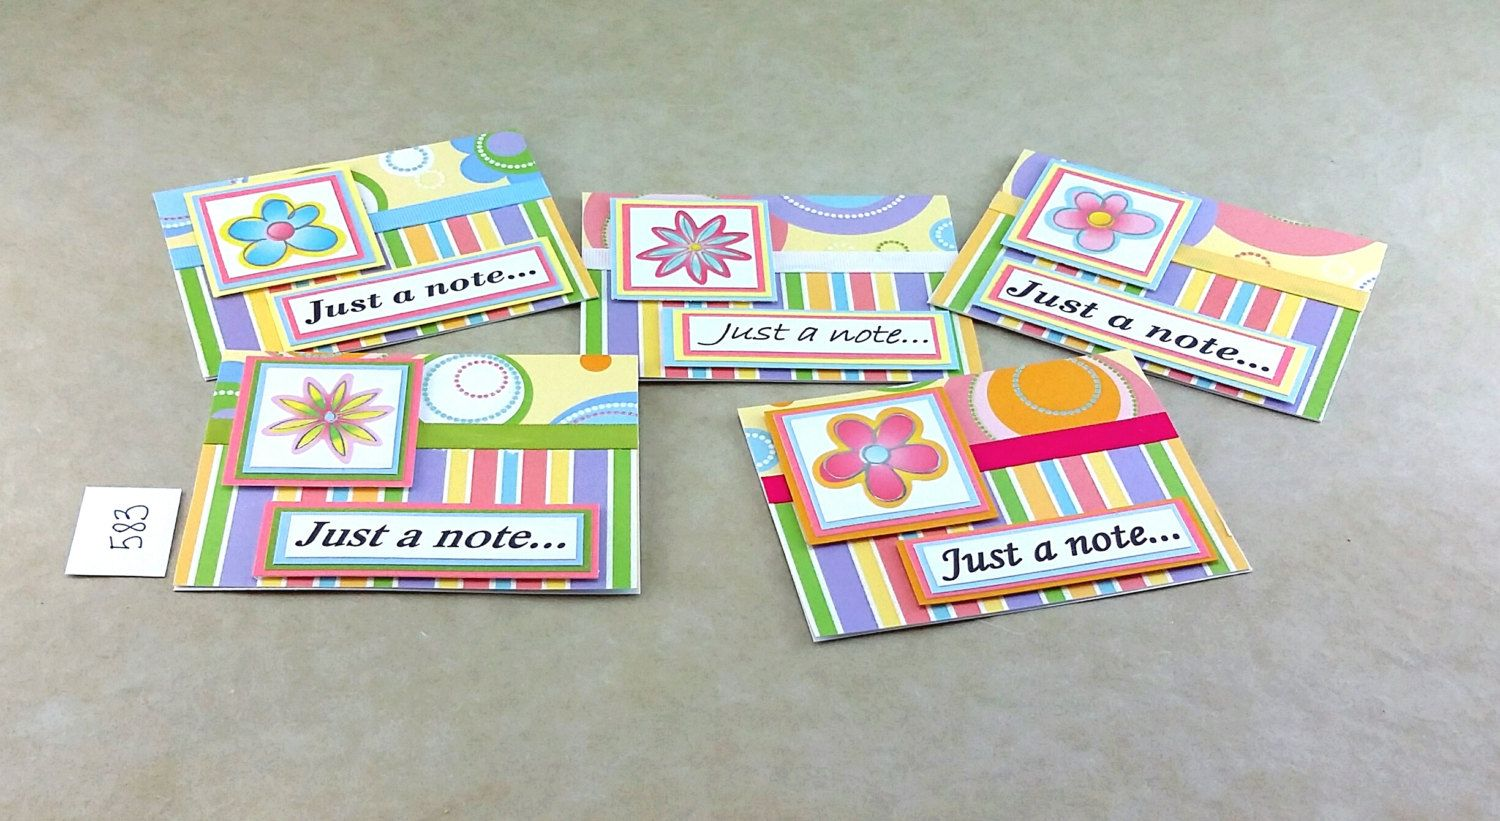 Flower Note Card, Any Occasion Notecard, Box Set Notecards, Handmade Notecard, Just A Note, One of a Kind Card, Blank Note Card, Blank Card by TheCardCornerNC on Etsy